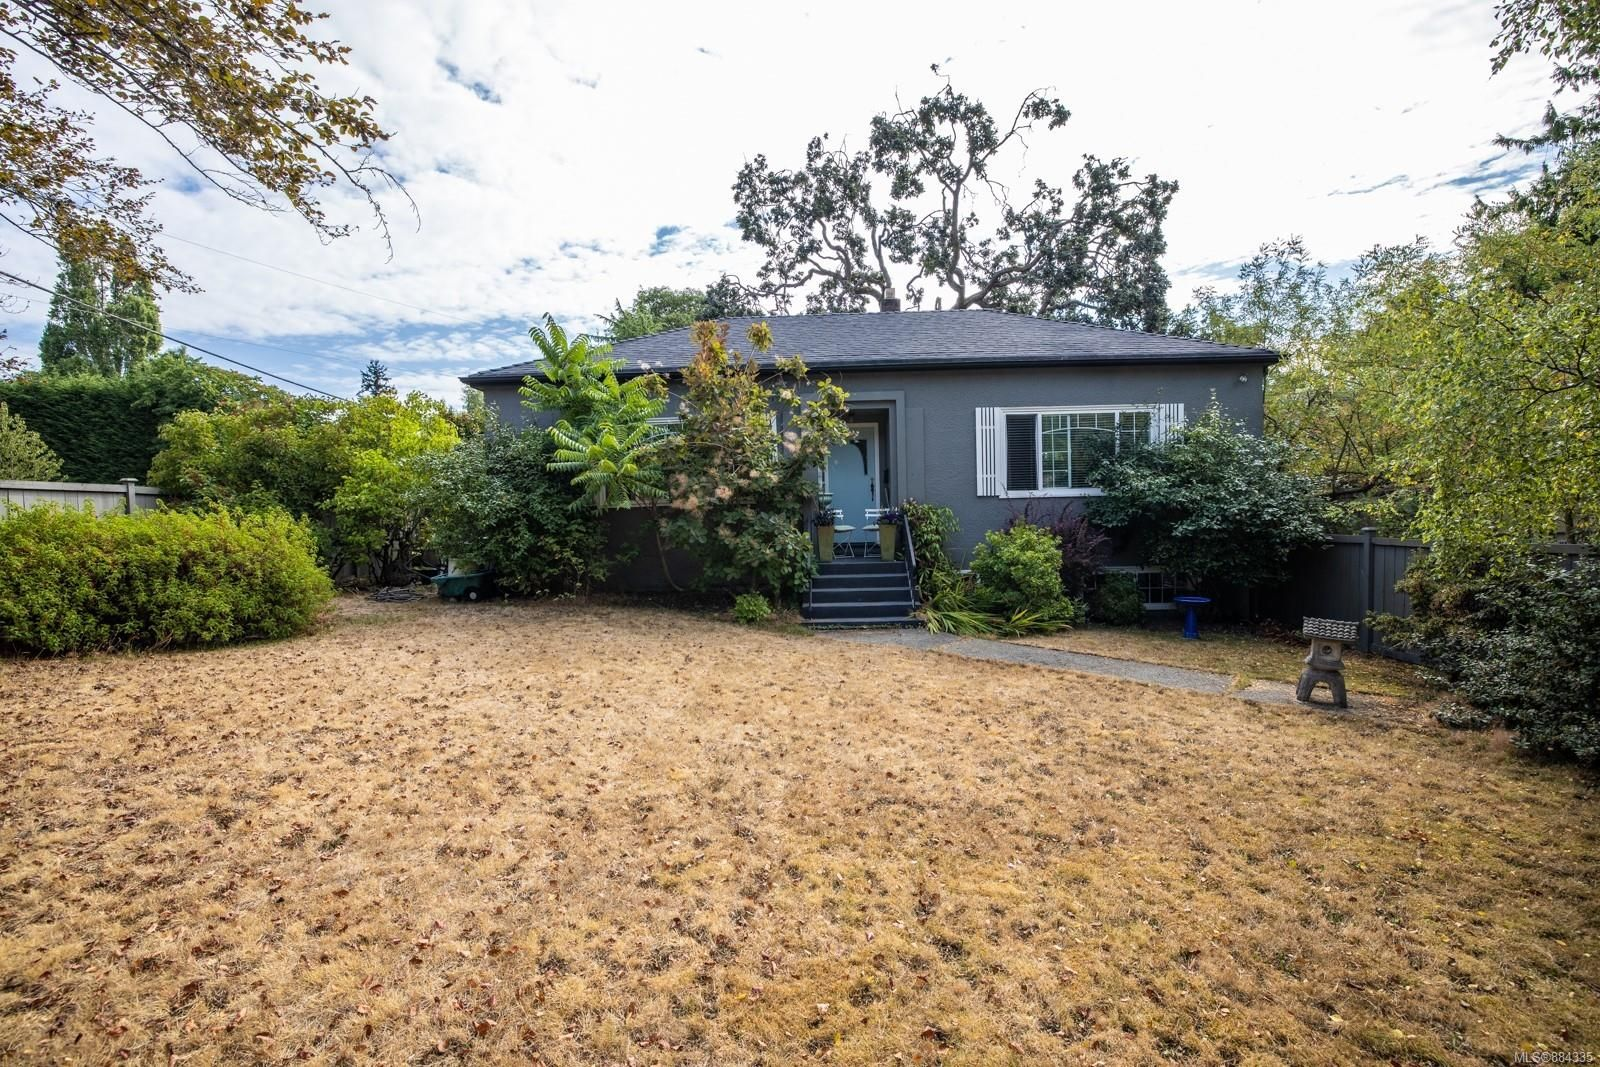 Main Photo: 3335 Maplewood Rd in Saanich: SE Maplewood House for sale (Saanich East)  : MLS®# 884335